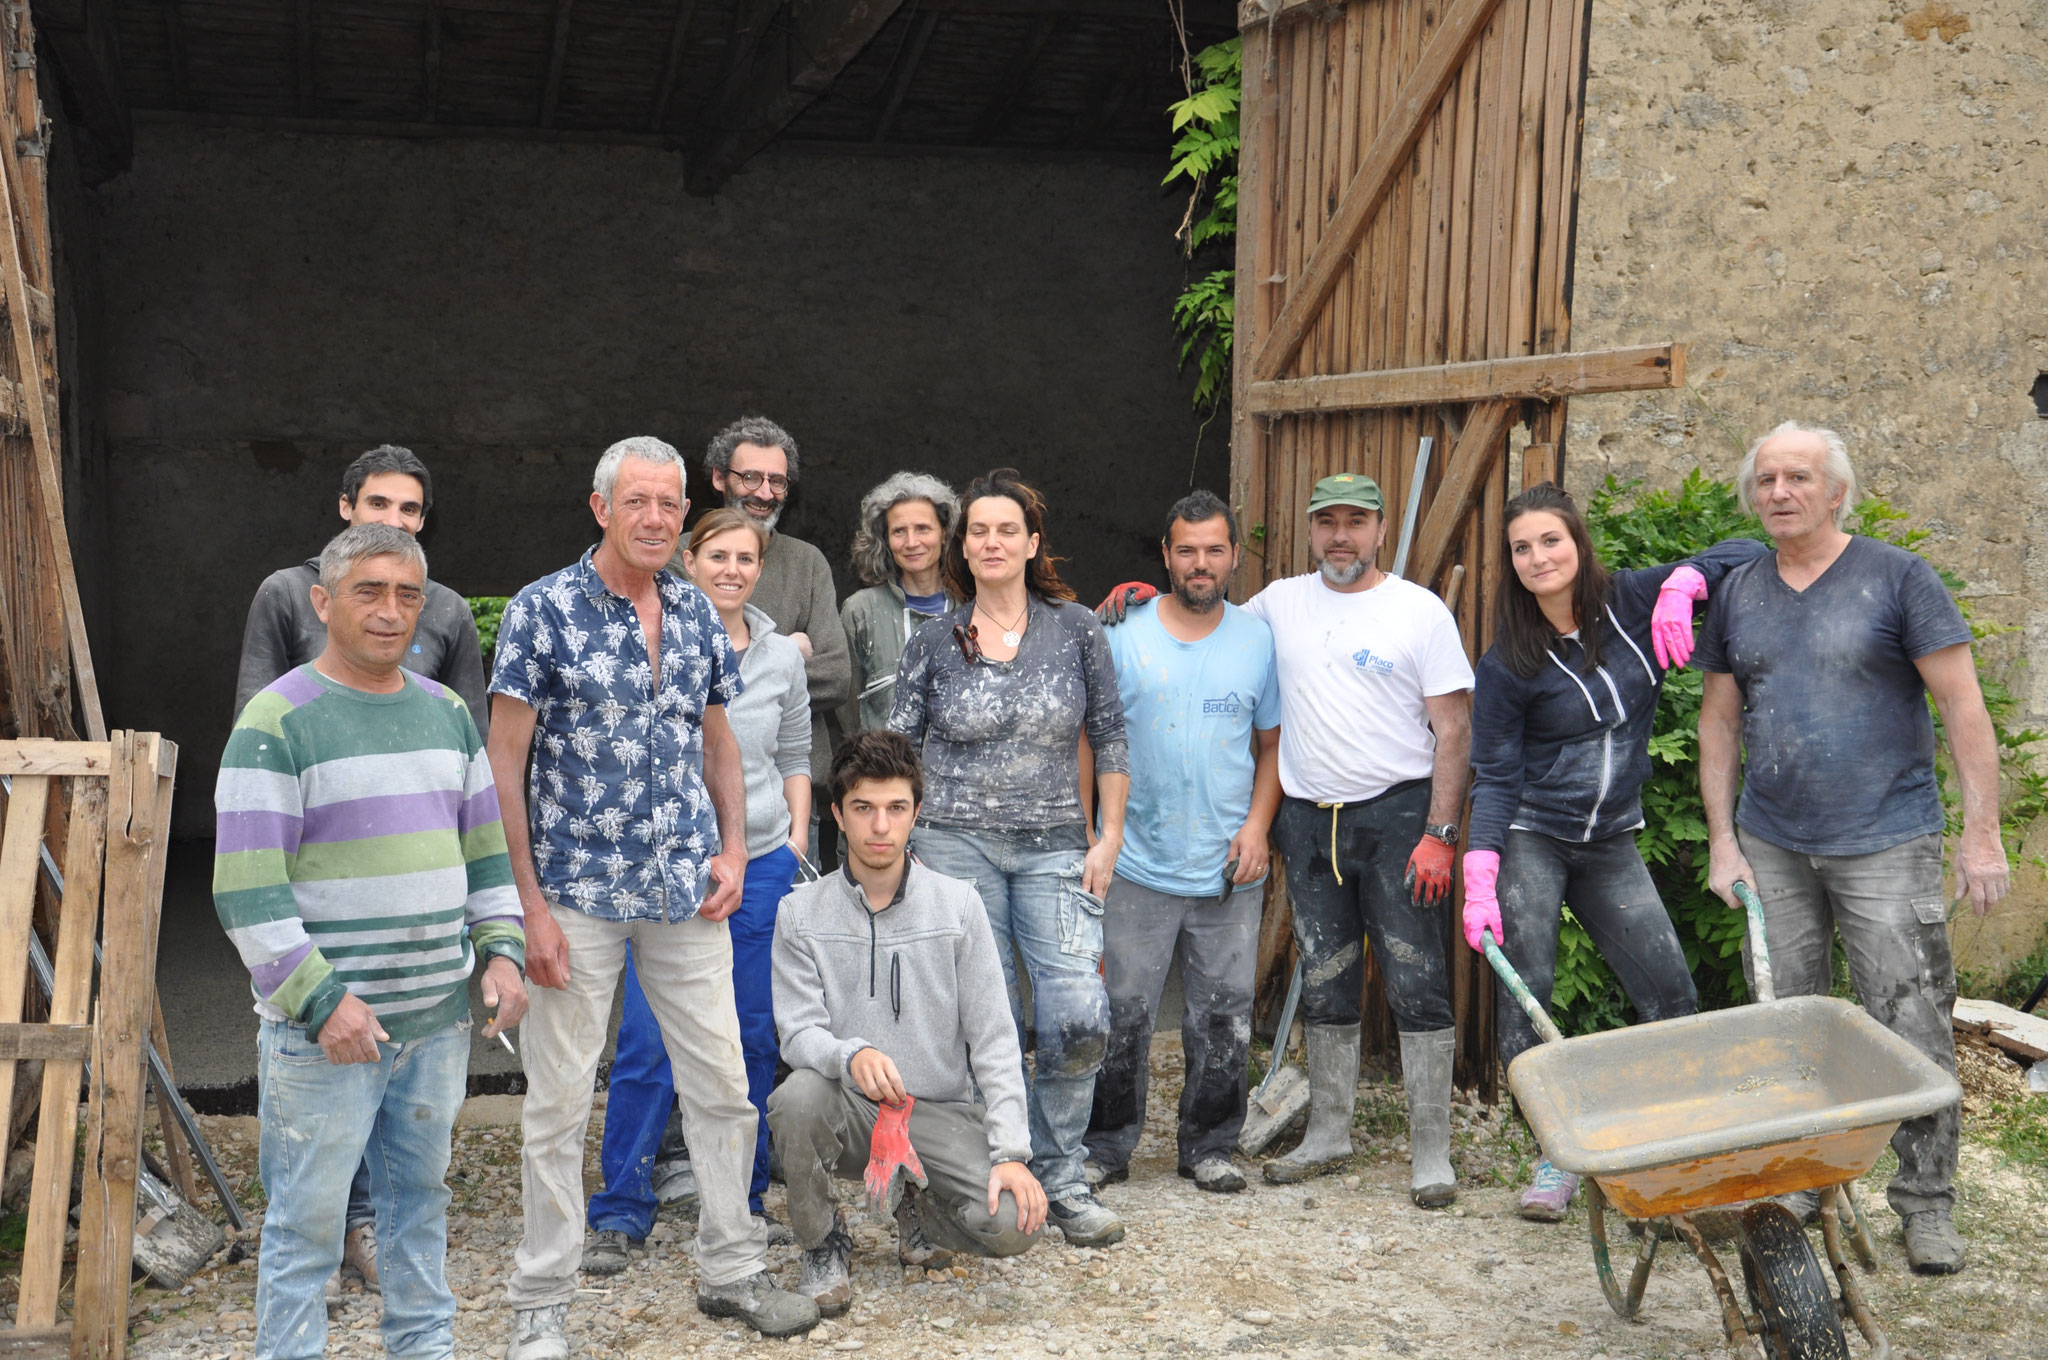 Anne Gomez - Chantier participatif dalle chaux chanvre